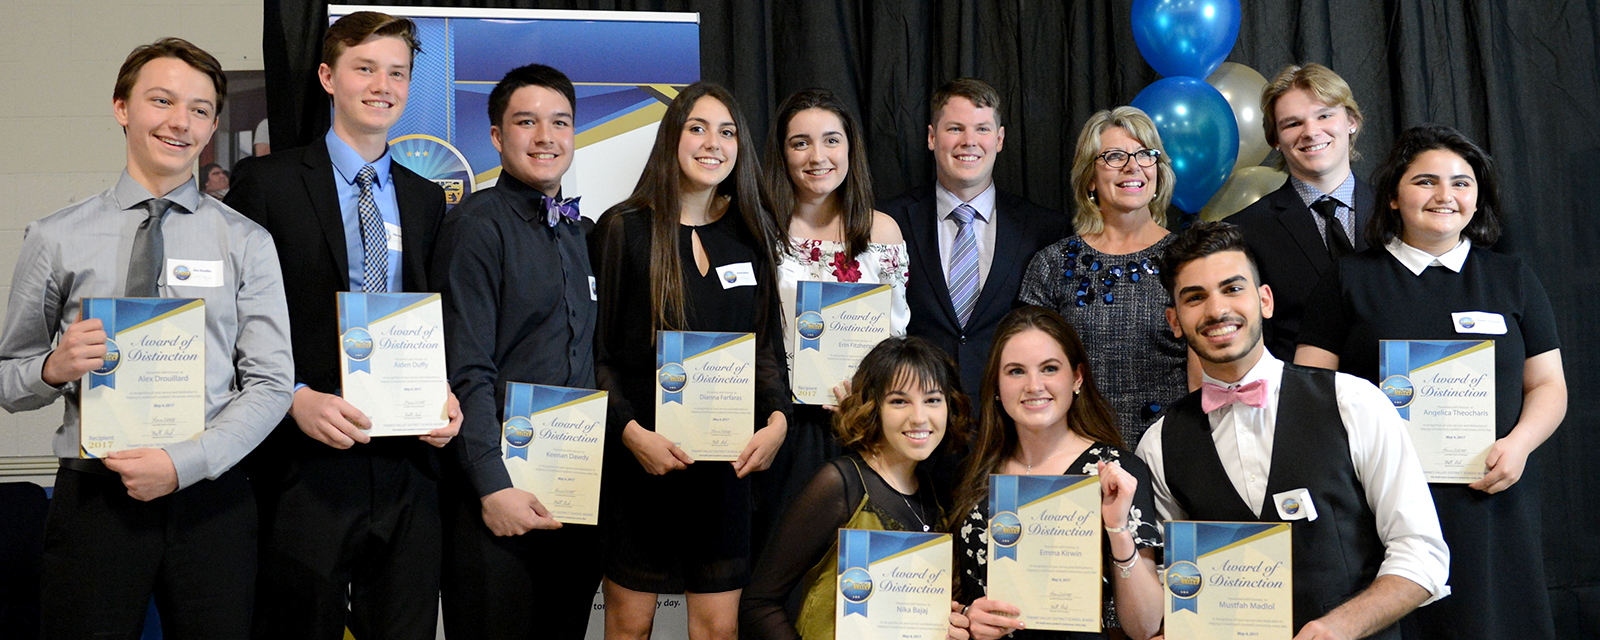 A group of secondary students receive an award